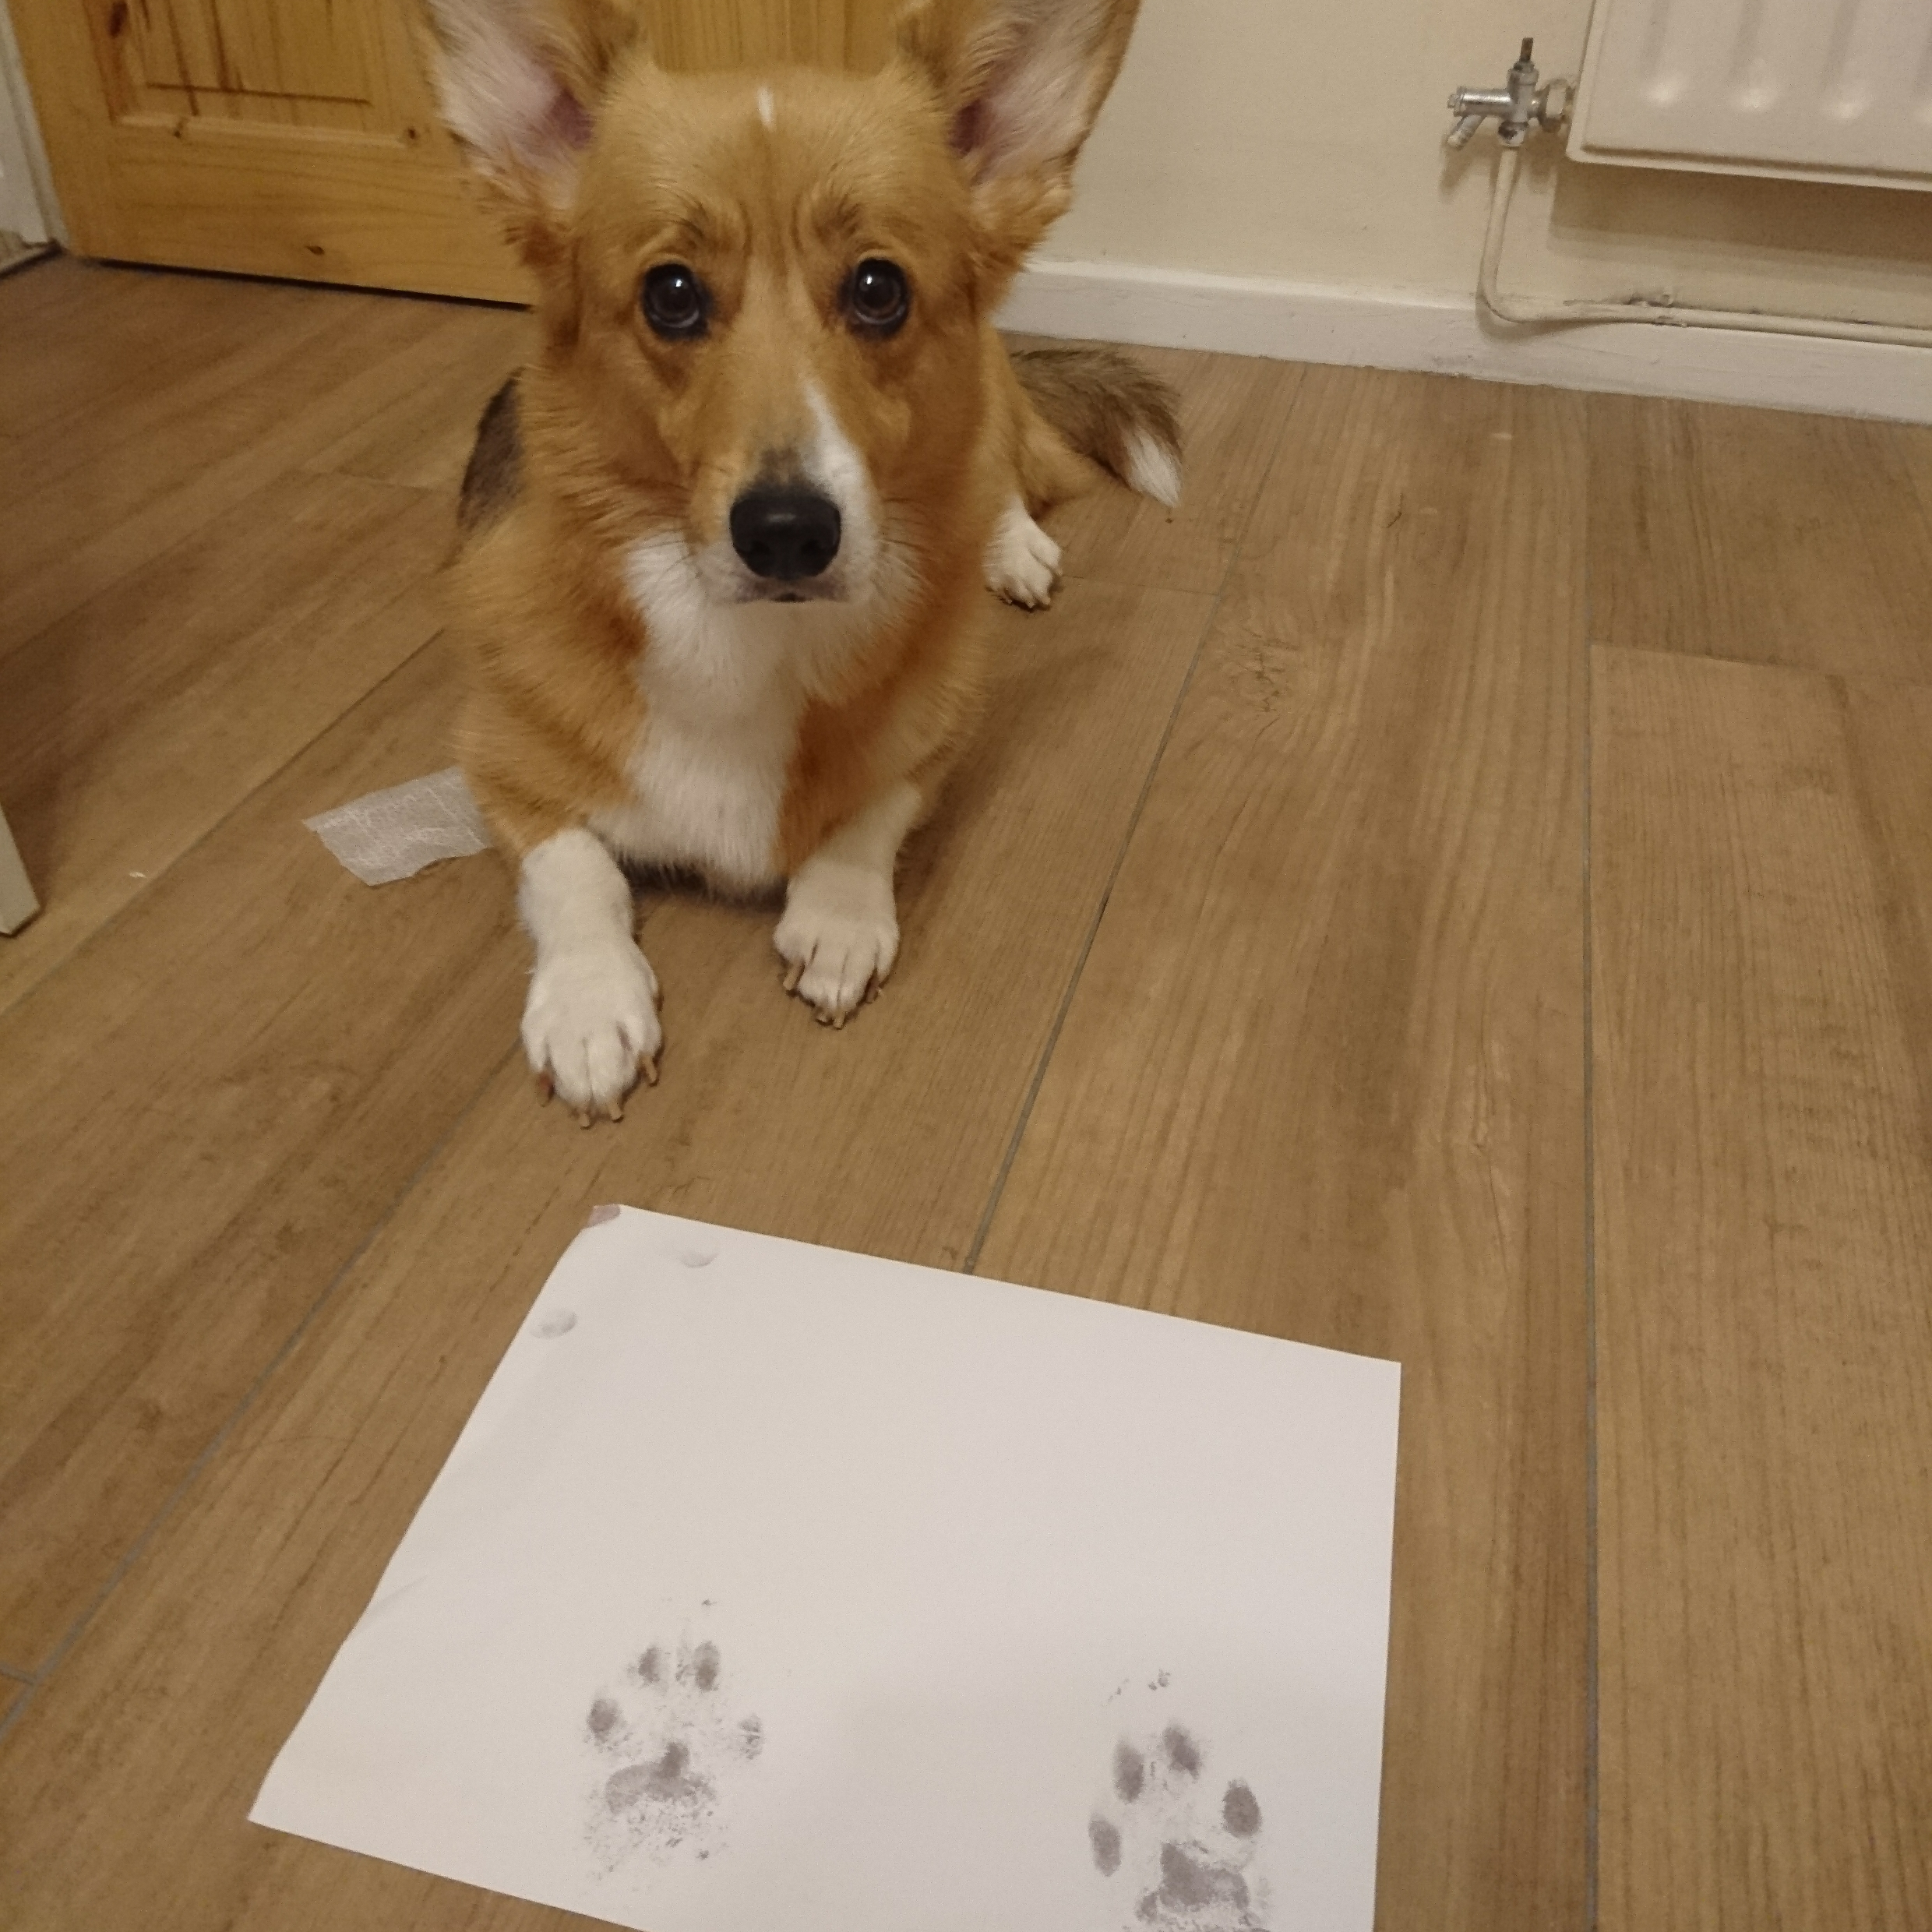 Corgi sat proudly with her inkless paw prints